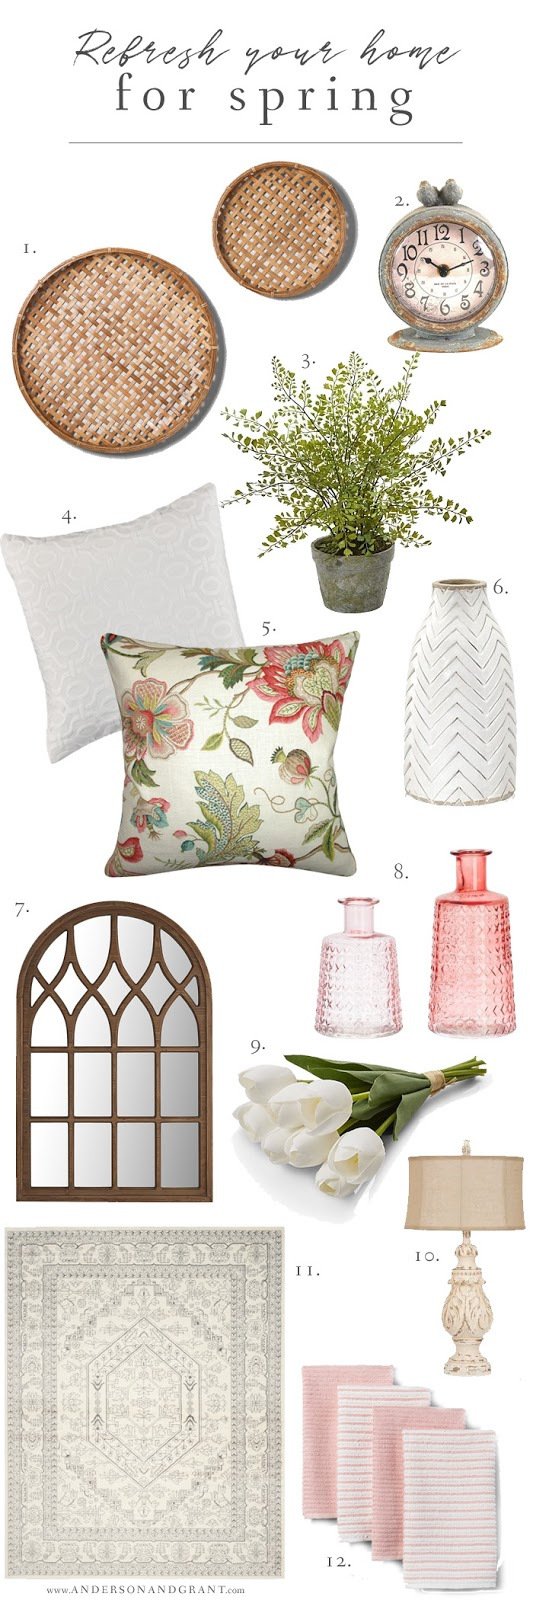 Simple tips for adding a fresh spring touch to your home, plus a few favorite decor finds. #andersonandgrant  #spring #decor